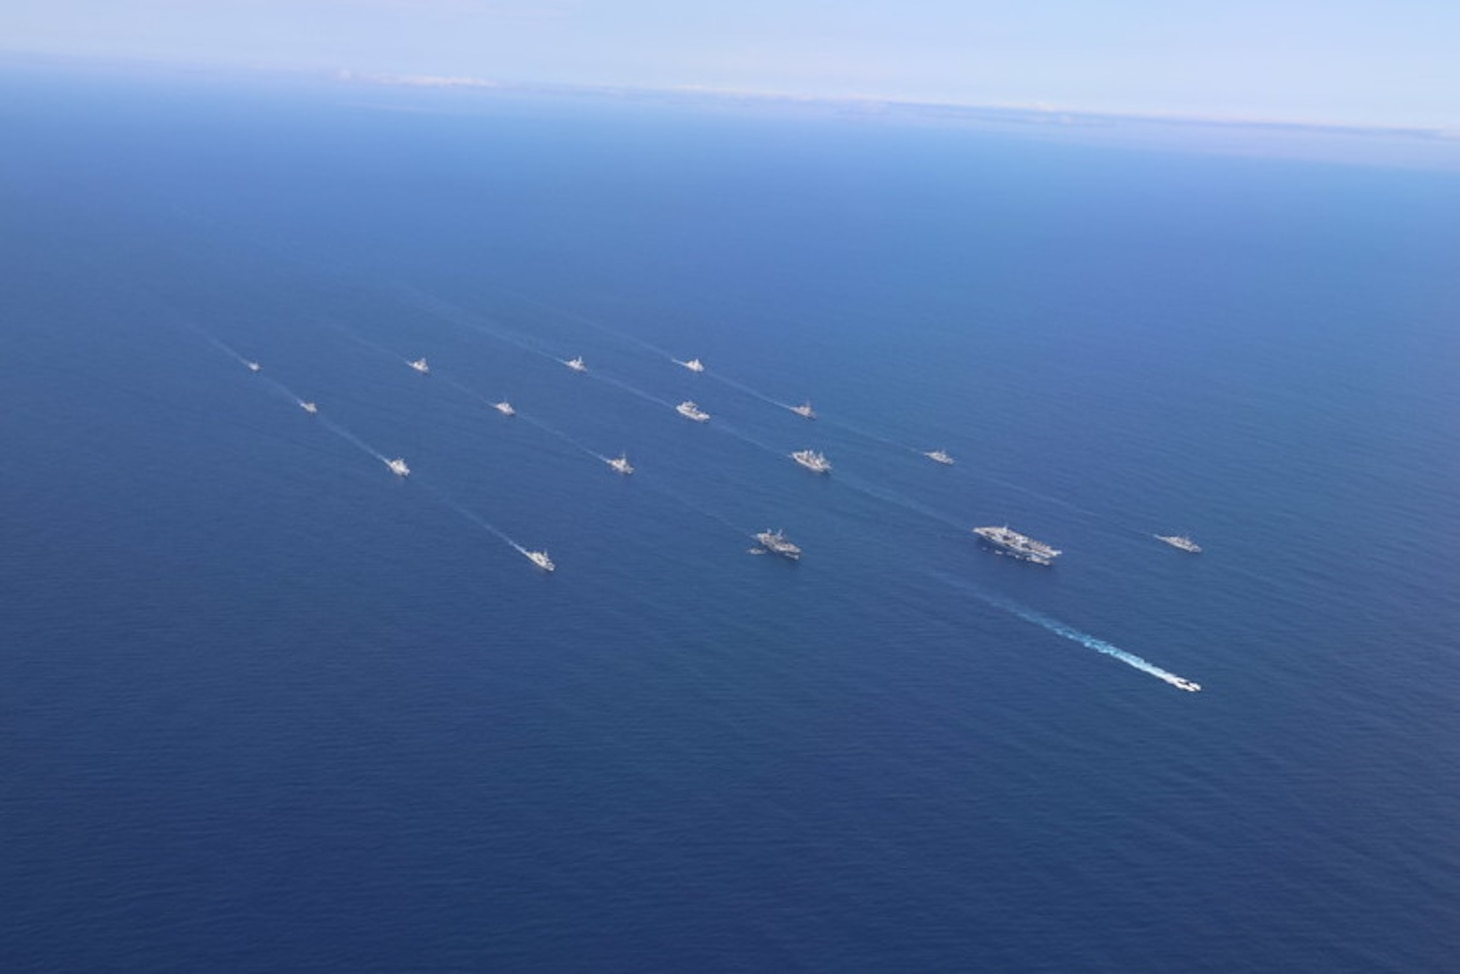 HMS Queen Elizabeth and USS The Sullivans with the United Kingdom Carrier Strike Group joined ships with NATO Standing Maritime Groups One and Two for an impressive display of maritime power in the Eastern Atlantic on 28 May 2021.